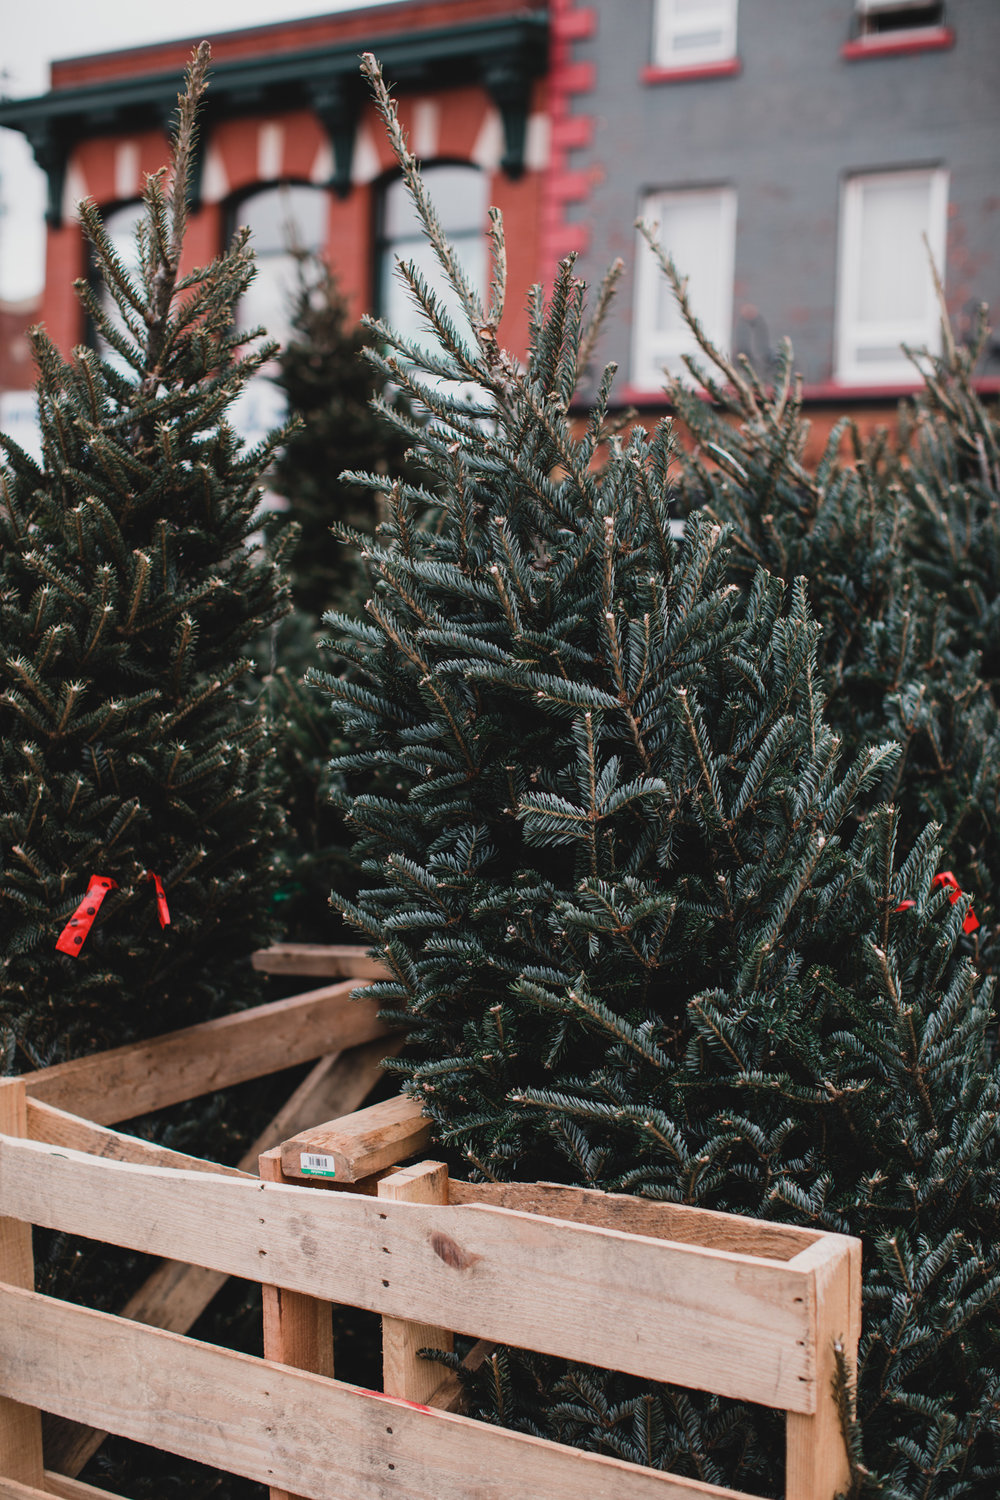 Byward Market Christmas tree